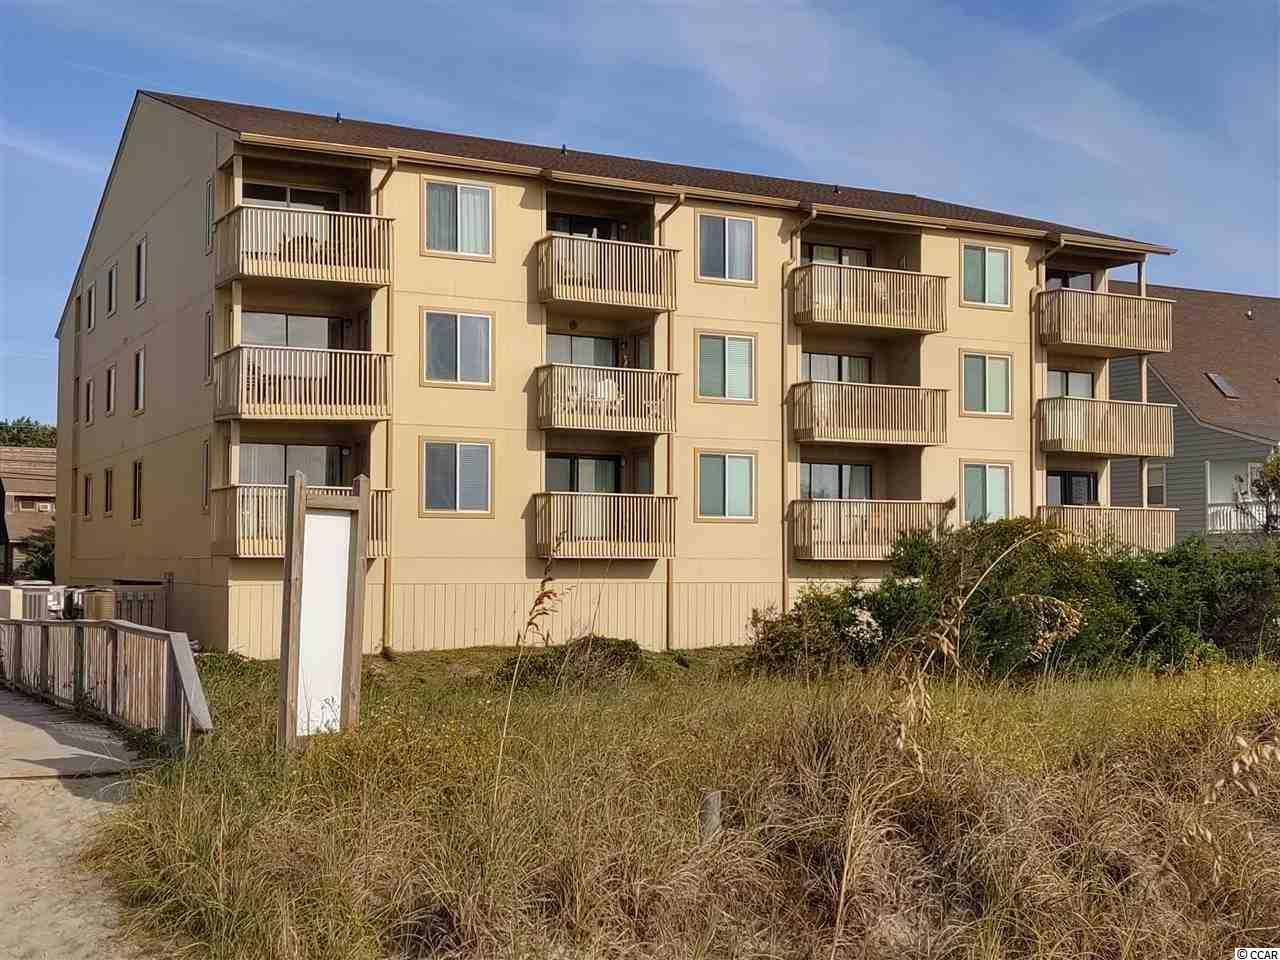 Welcome to your spacious DIRECT oceanfront 3 bedroom condo at Coastal Dunes!  Enjoy full unobstructed views of the ocean from the living room balcony, or another access from the owners' suite. There is beautiful new flooring throughout the main areas and new furniture. All the furniture conveys, this unit is move in ready! Great  for a primary residence, secondary home, or investment. There is a fully kitchen and washer/dryer that conveys. A pool belongs to Coastal Dunes with the option for under building parking.Located in the heart of Crescent Beach in North Myrtle Beach, this condo will feel like home. Just a short drive from Main Street, plenty of dining, entertainment, and lots of golf.This is a smaller and quaint condo building that has only 12 units, come and be 1 out of the 12!